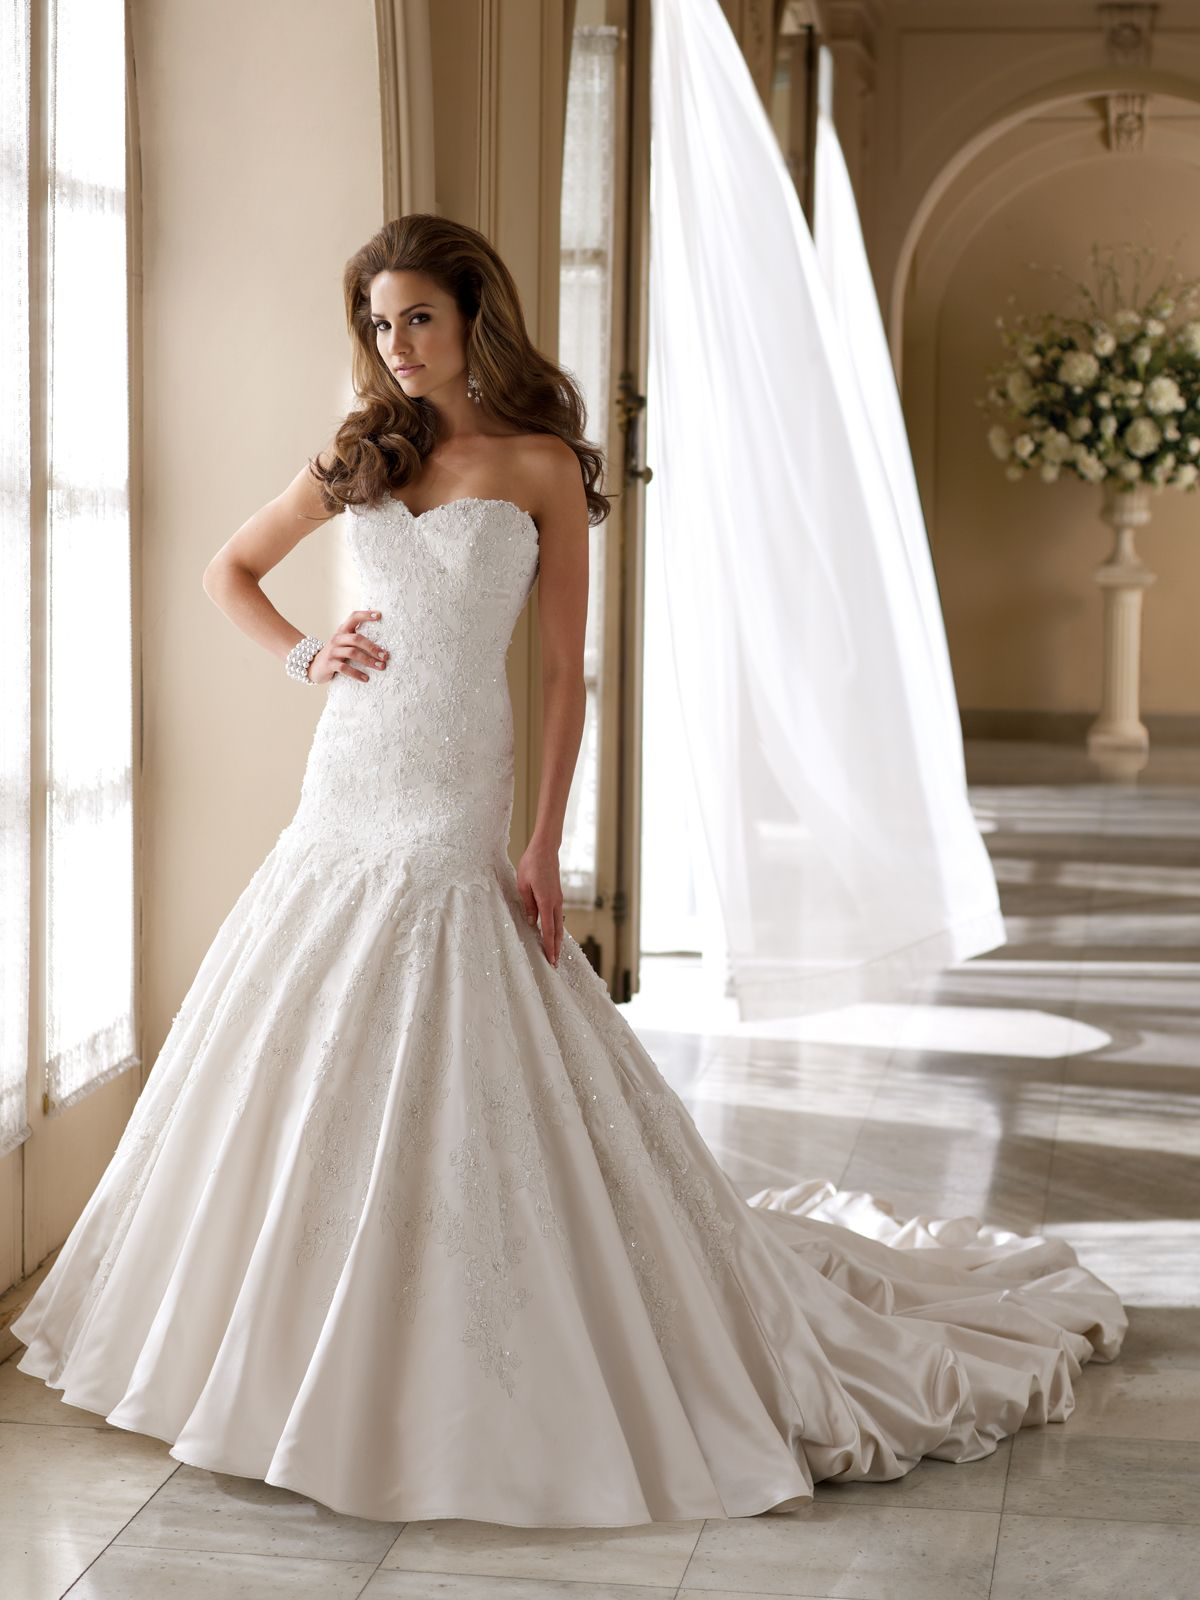 17 Best images about Wedding Dresses on Pinterest | Satin wedding ...